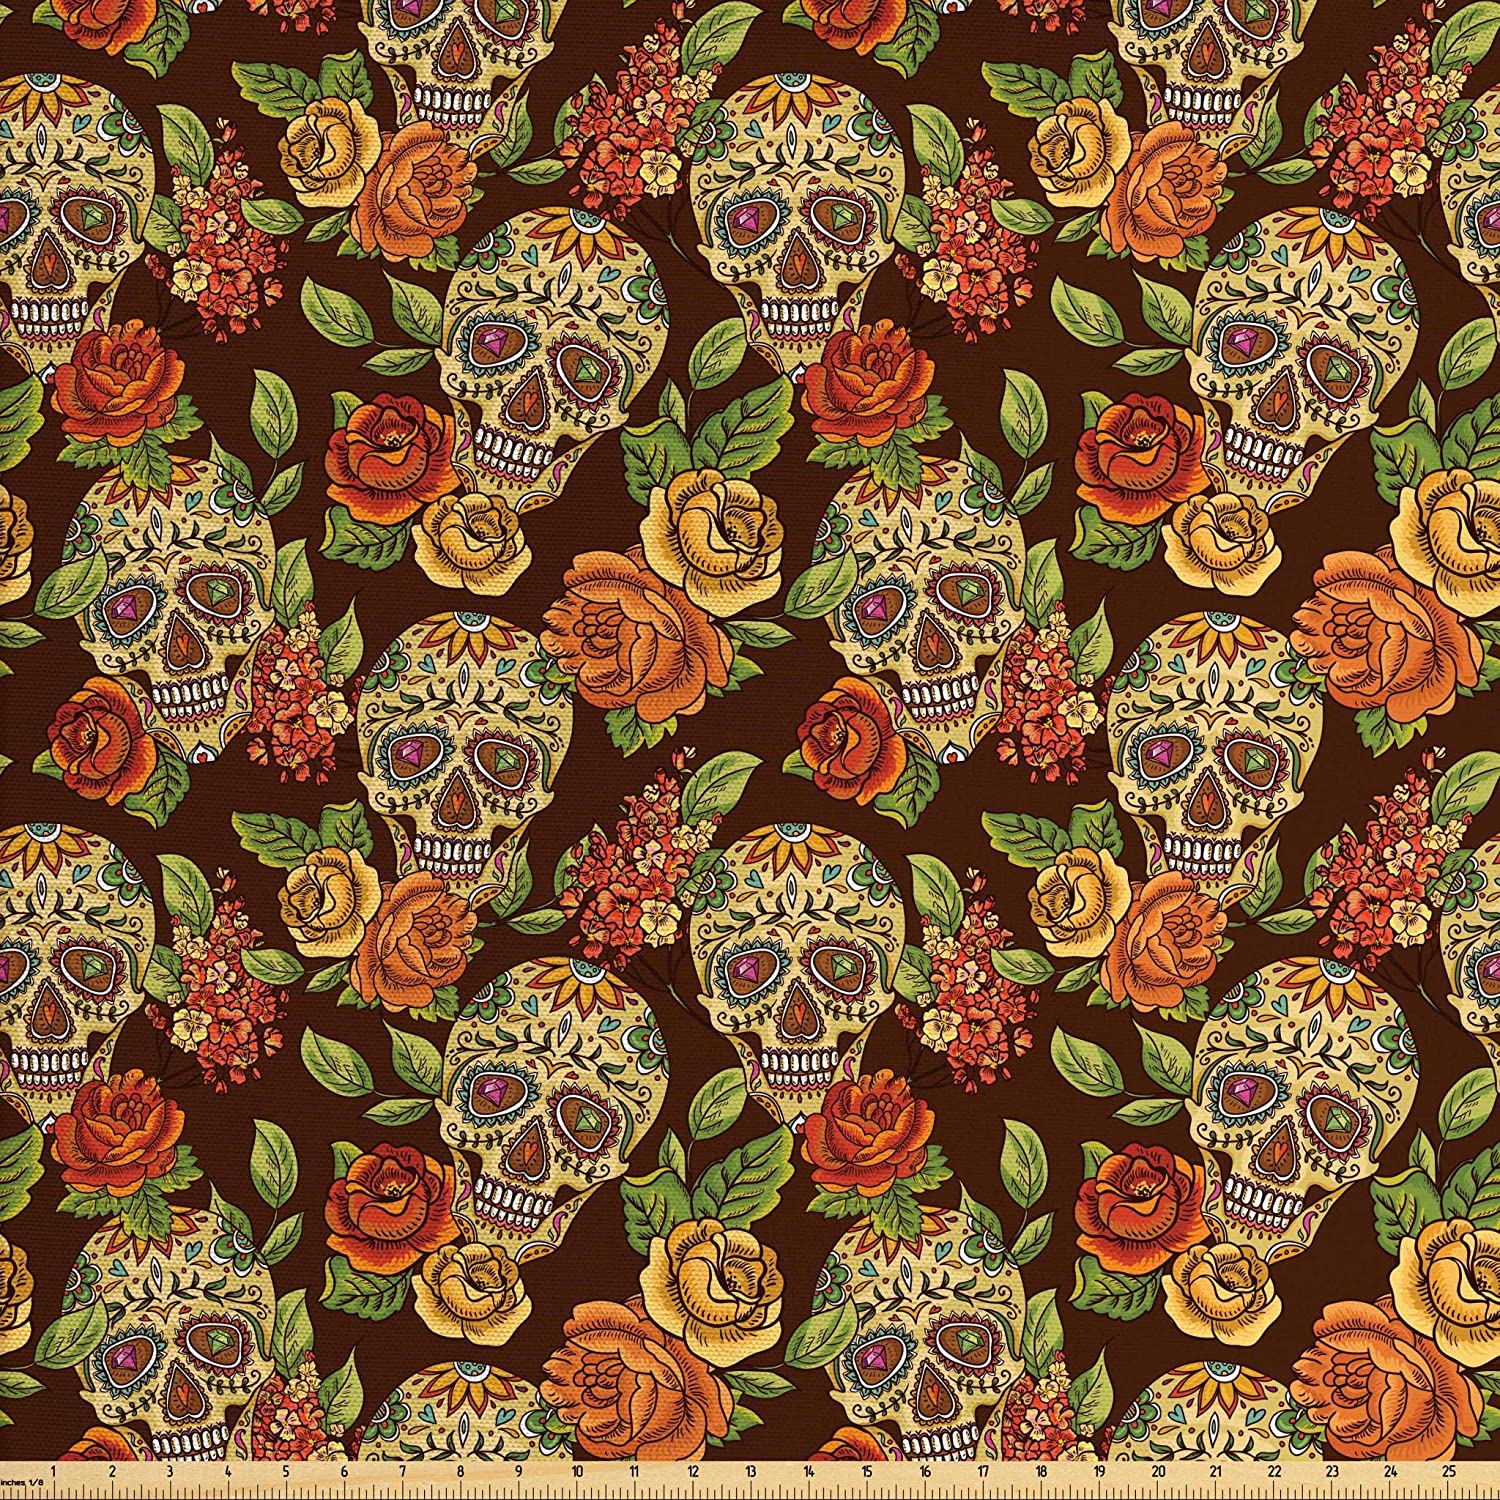 Ambesonne Sugar Skull Fabric by The Yard, Autumn Colored Flowers and Leaves Patterns in Smily Head Bones, Decorative Fabric for Upholstery and Home Accents, 1 Yard, Orange Green